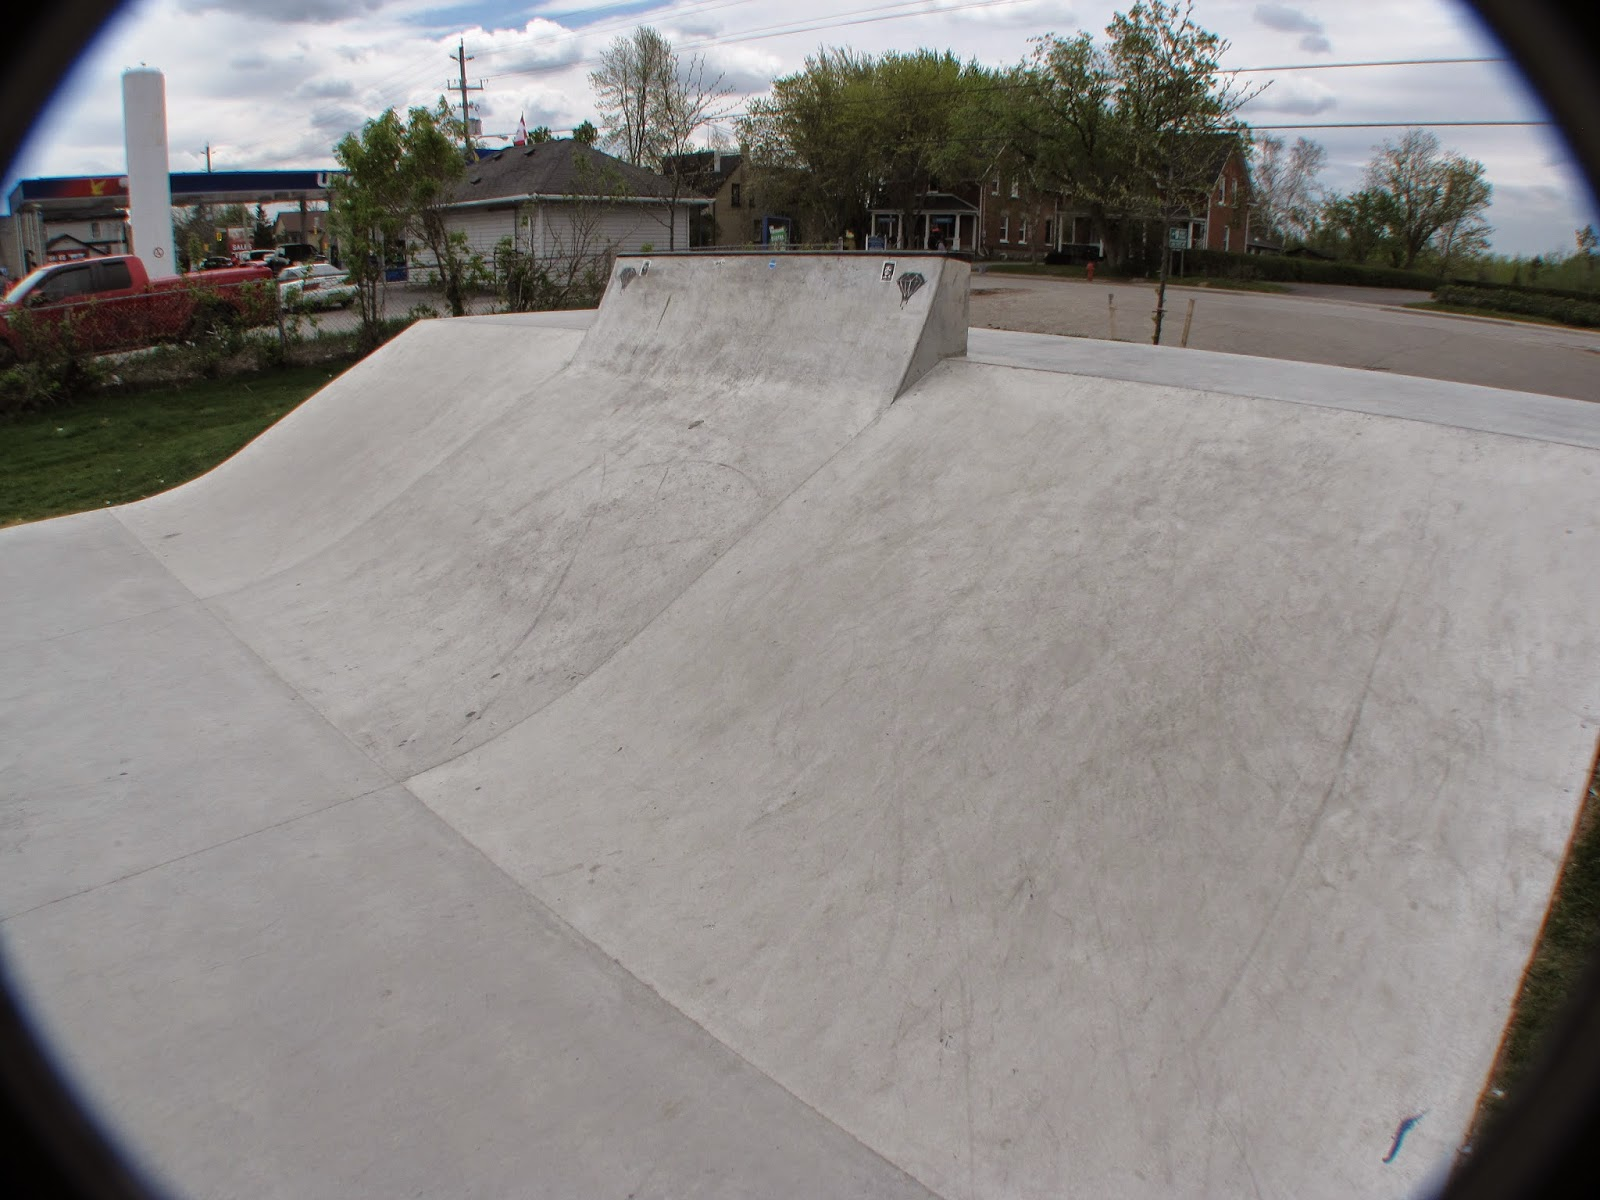 Spott Dreams of Skate Parks: Sutton, ON